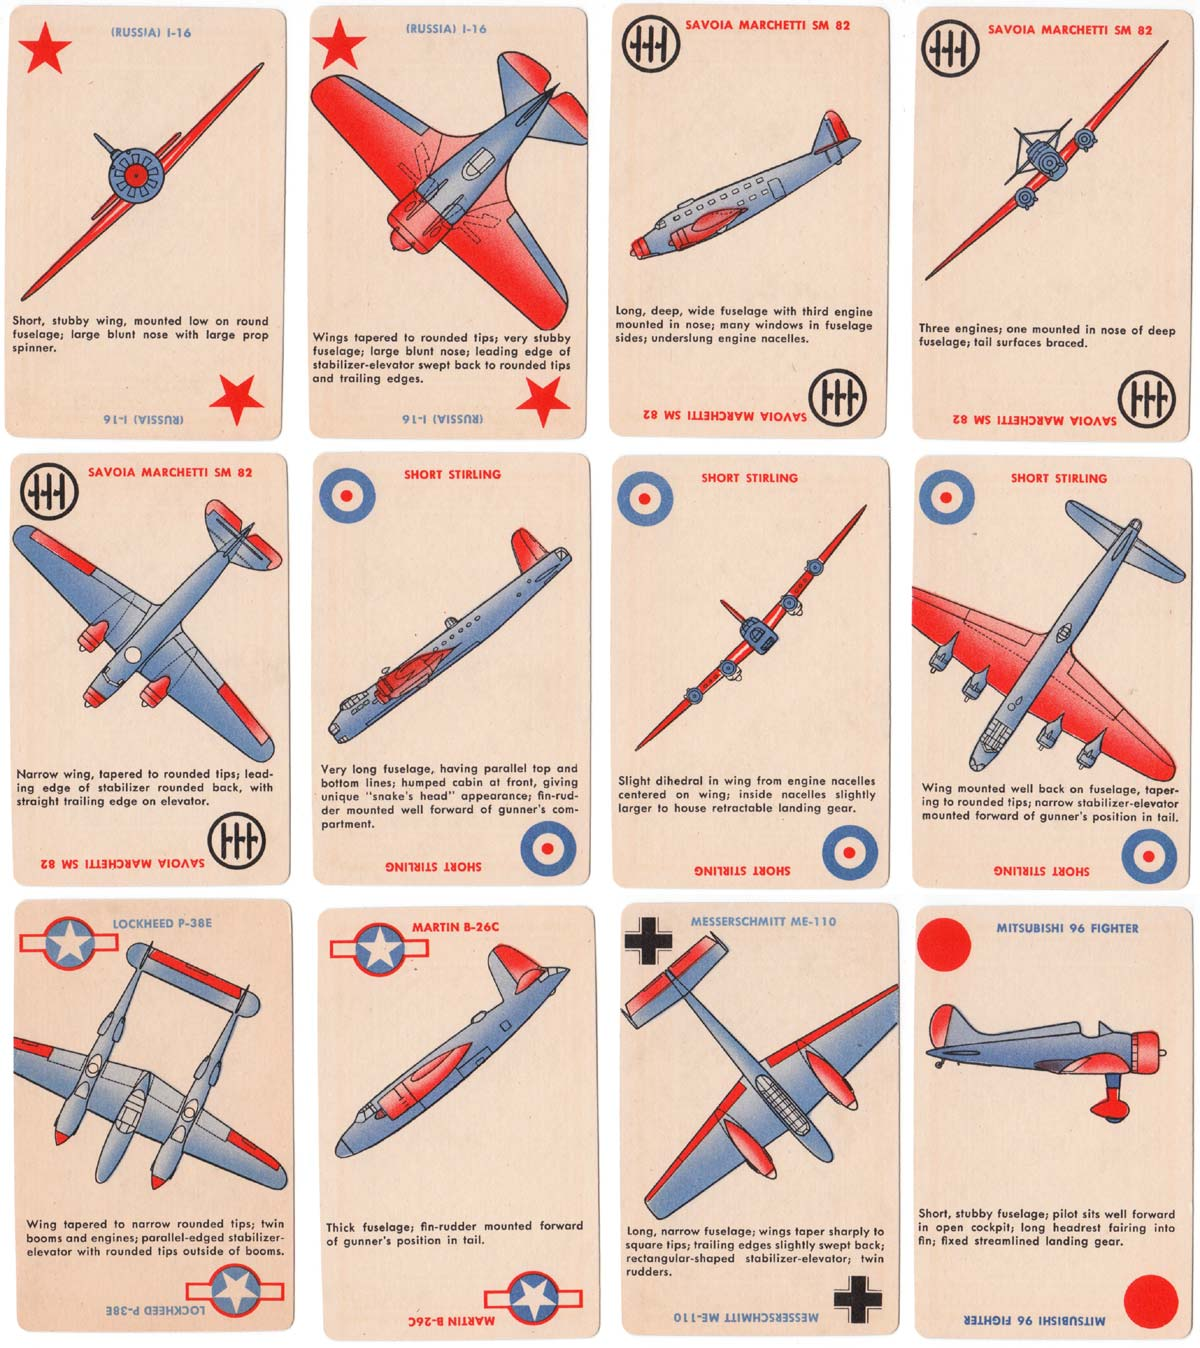 'Squadron Scramble' card game no.2 for identifying military planes, Whitman Publishing Co., Racine, Wisconsin, 1942